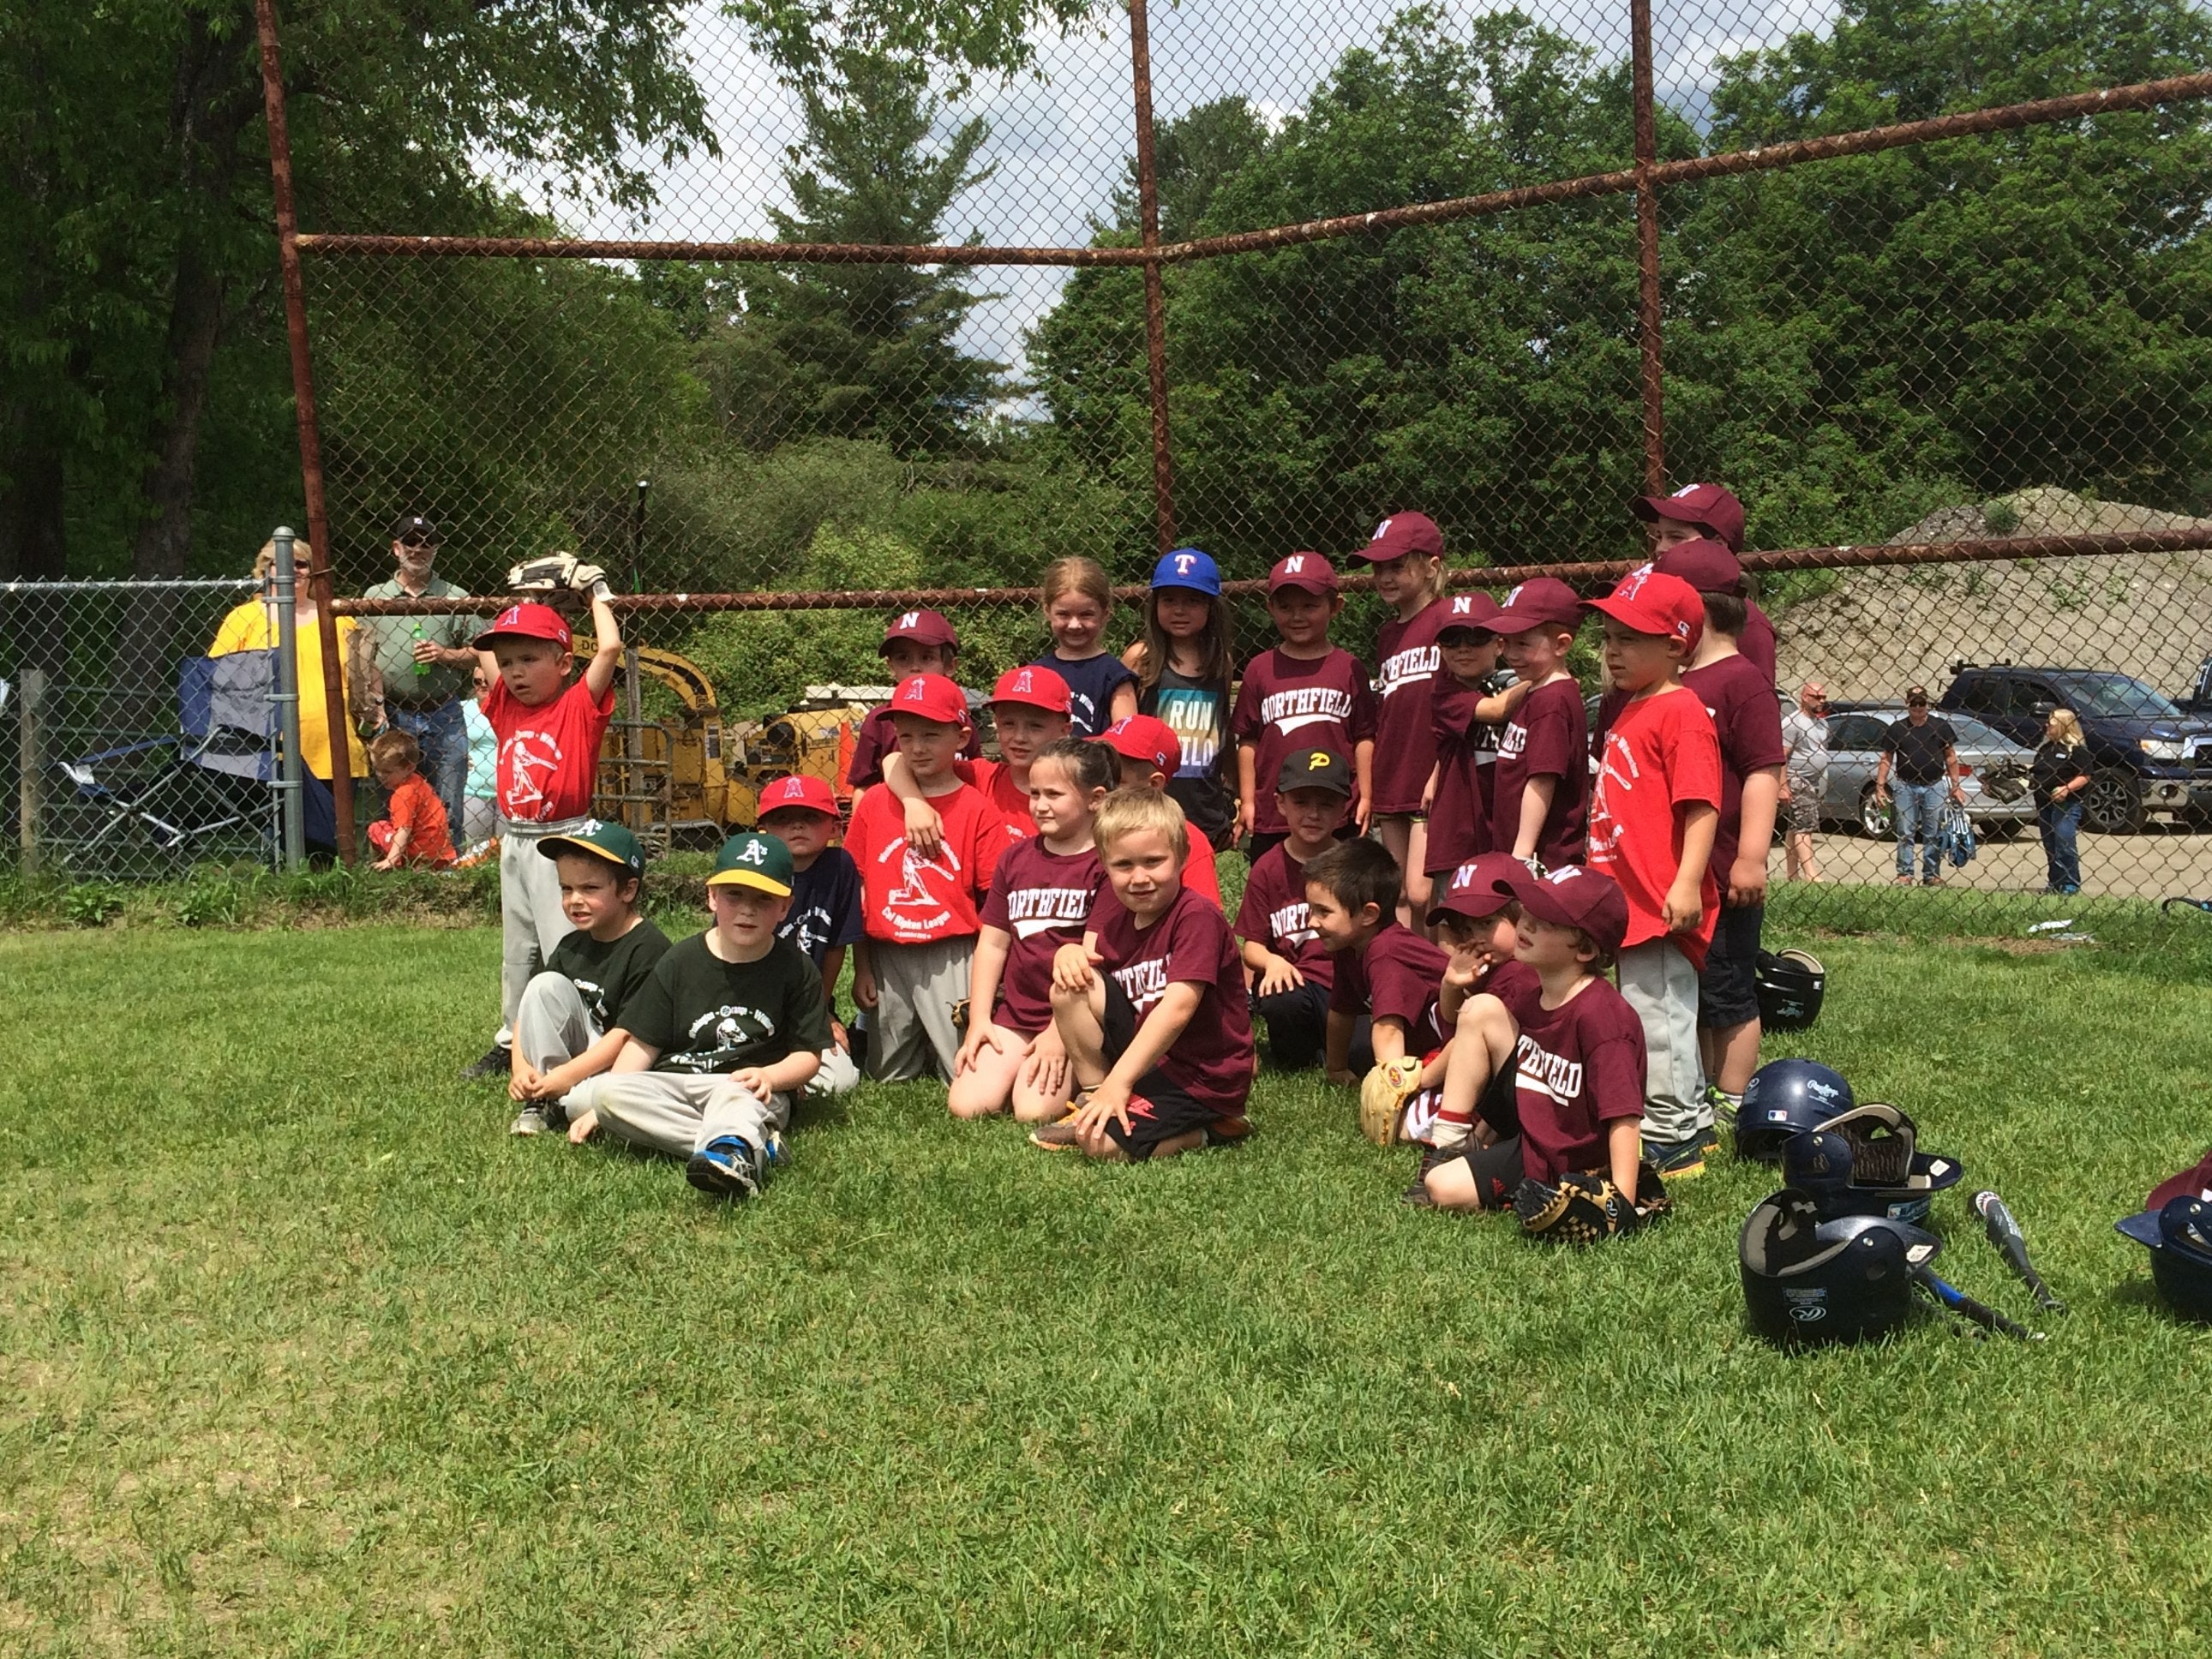 Green Mountain Youth Sports and Development